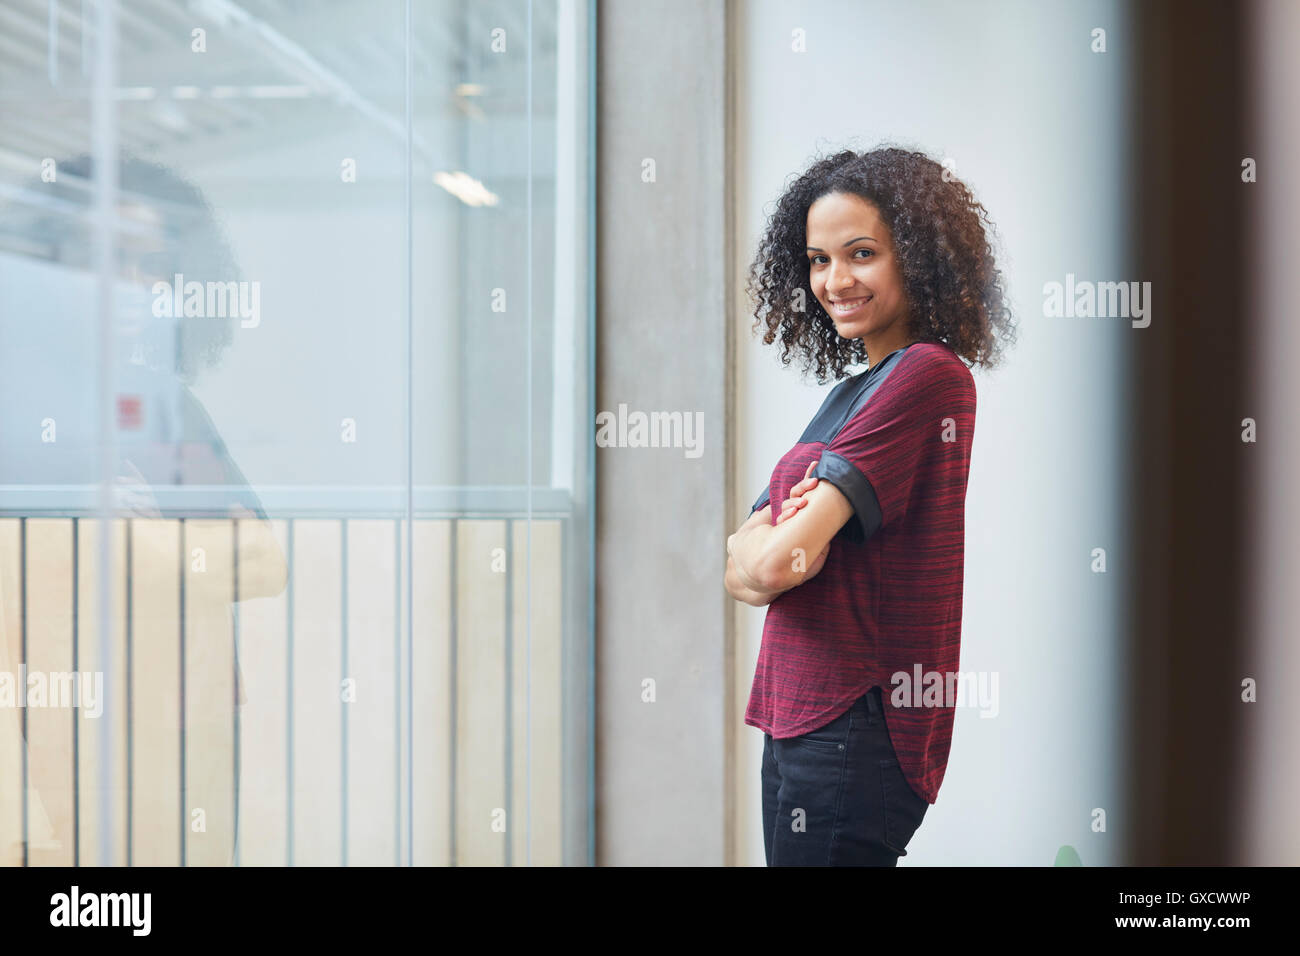 Portrait of young female designer in design studio - Stock Image